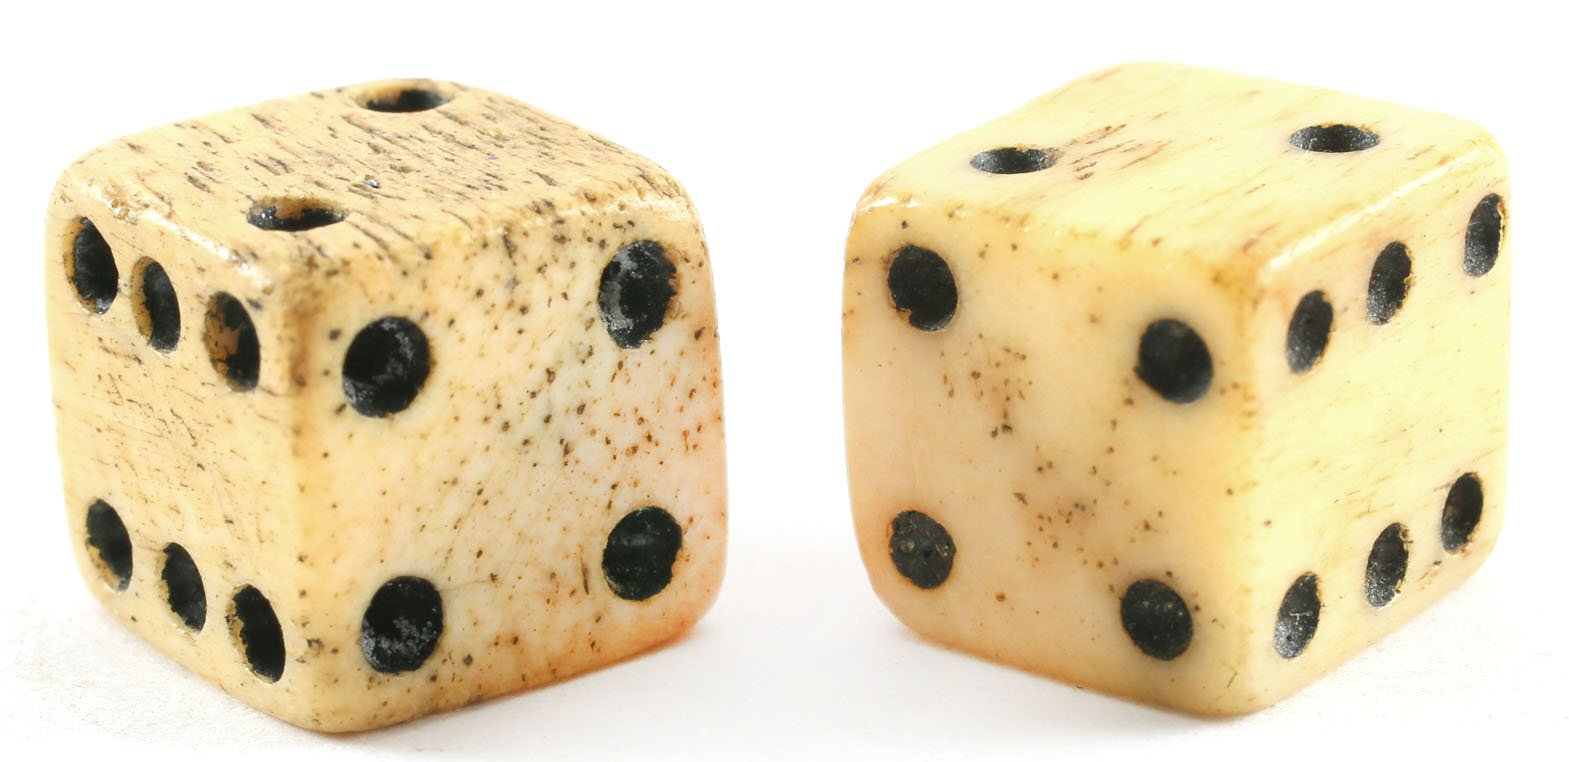 CIVIL WAR BONE DICE - Fagan Arms